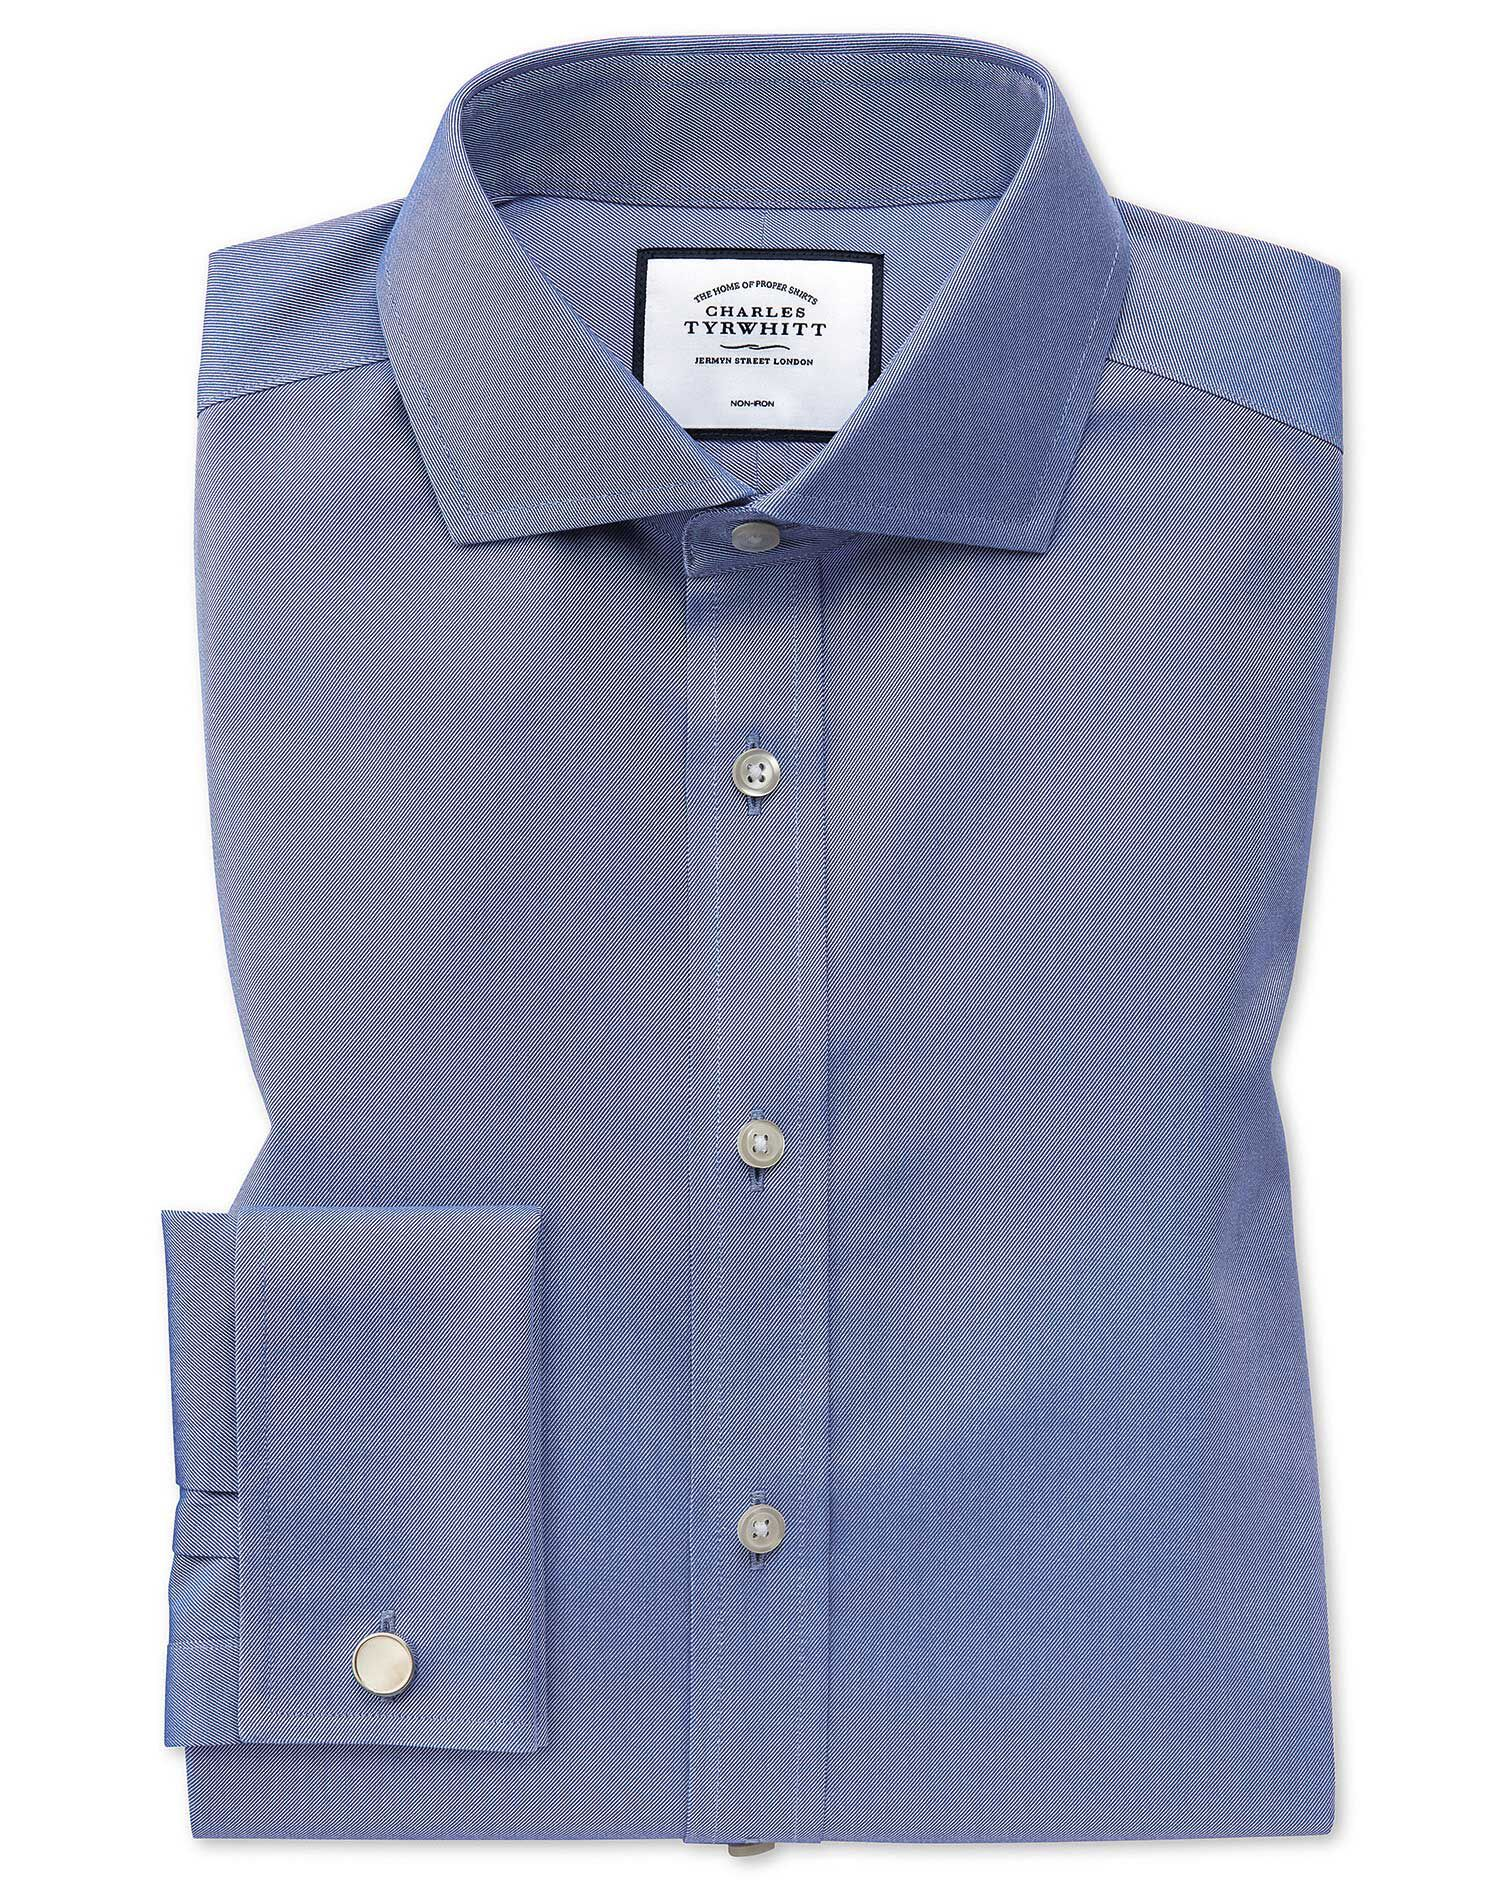 Extra Slim Fit Cutaway Collar Non-Iron Twill Mid Blue Cotton Formal Shirt Single Cuff Size 15.5/33 b